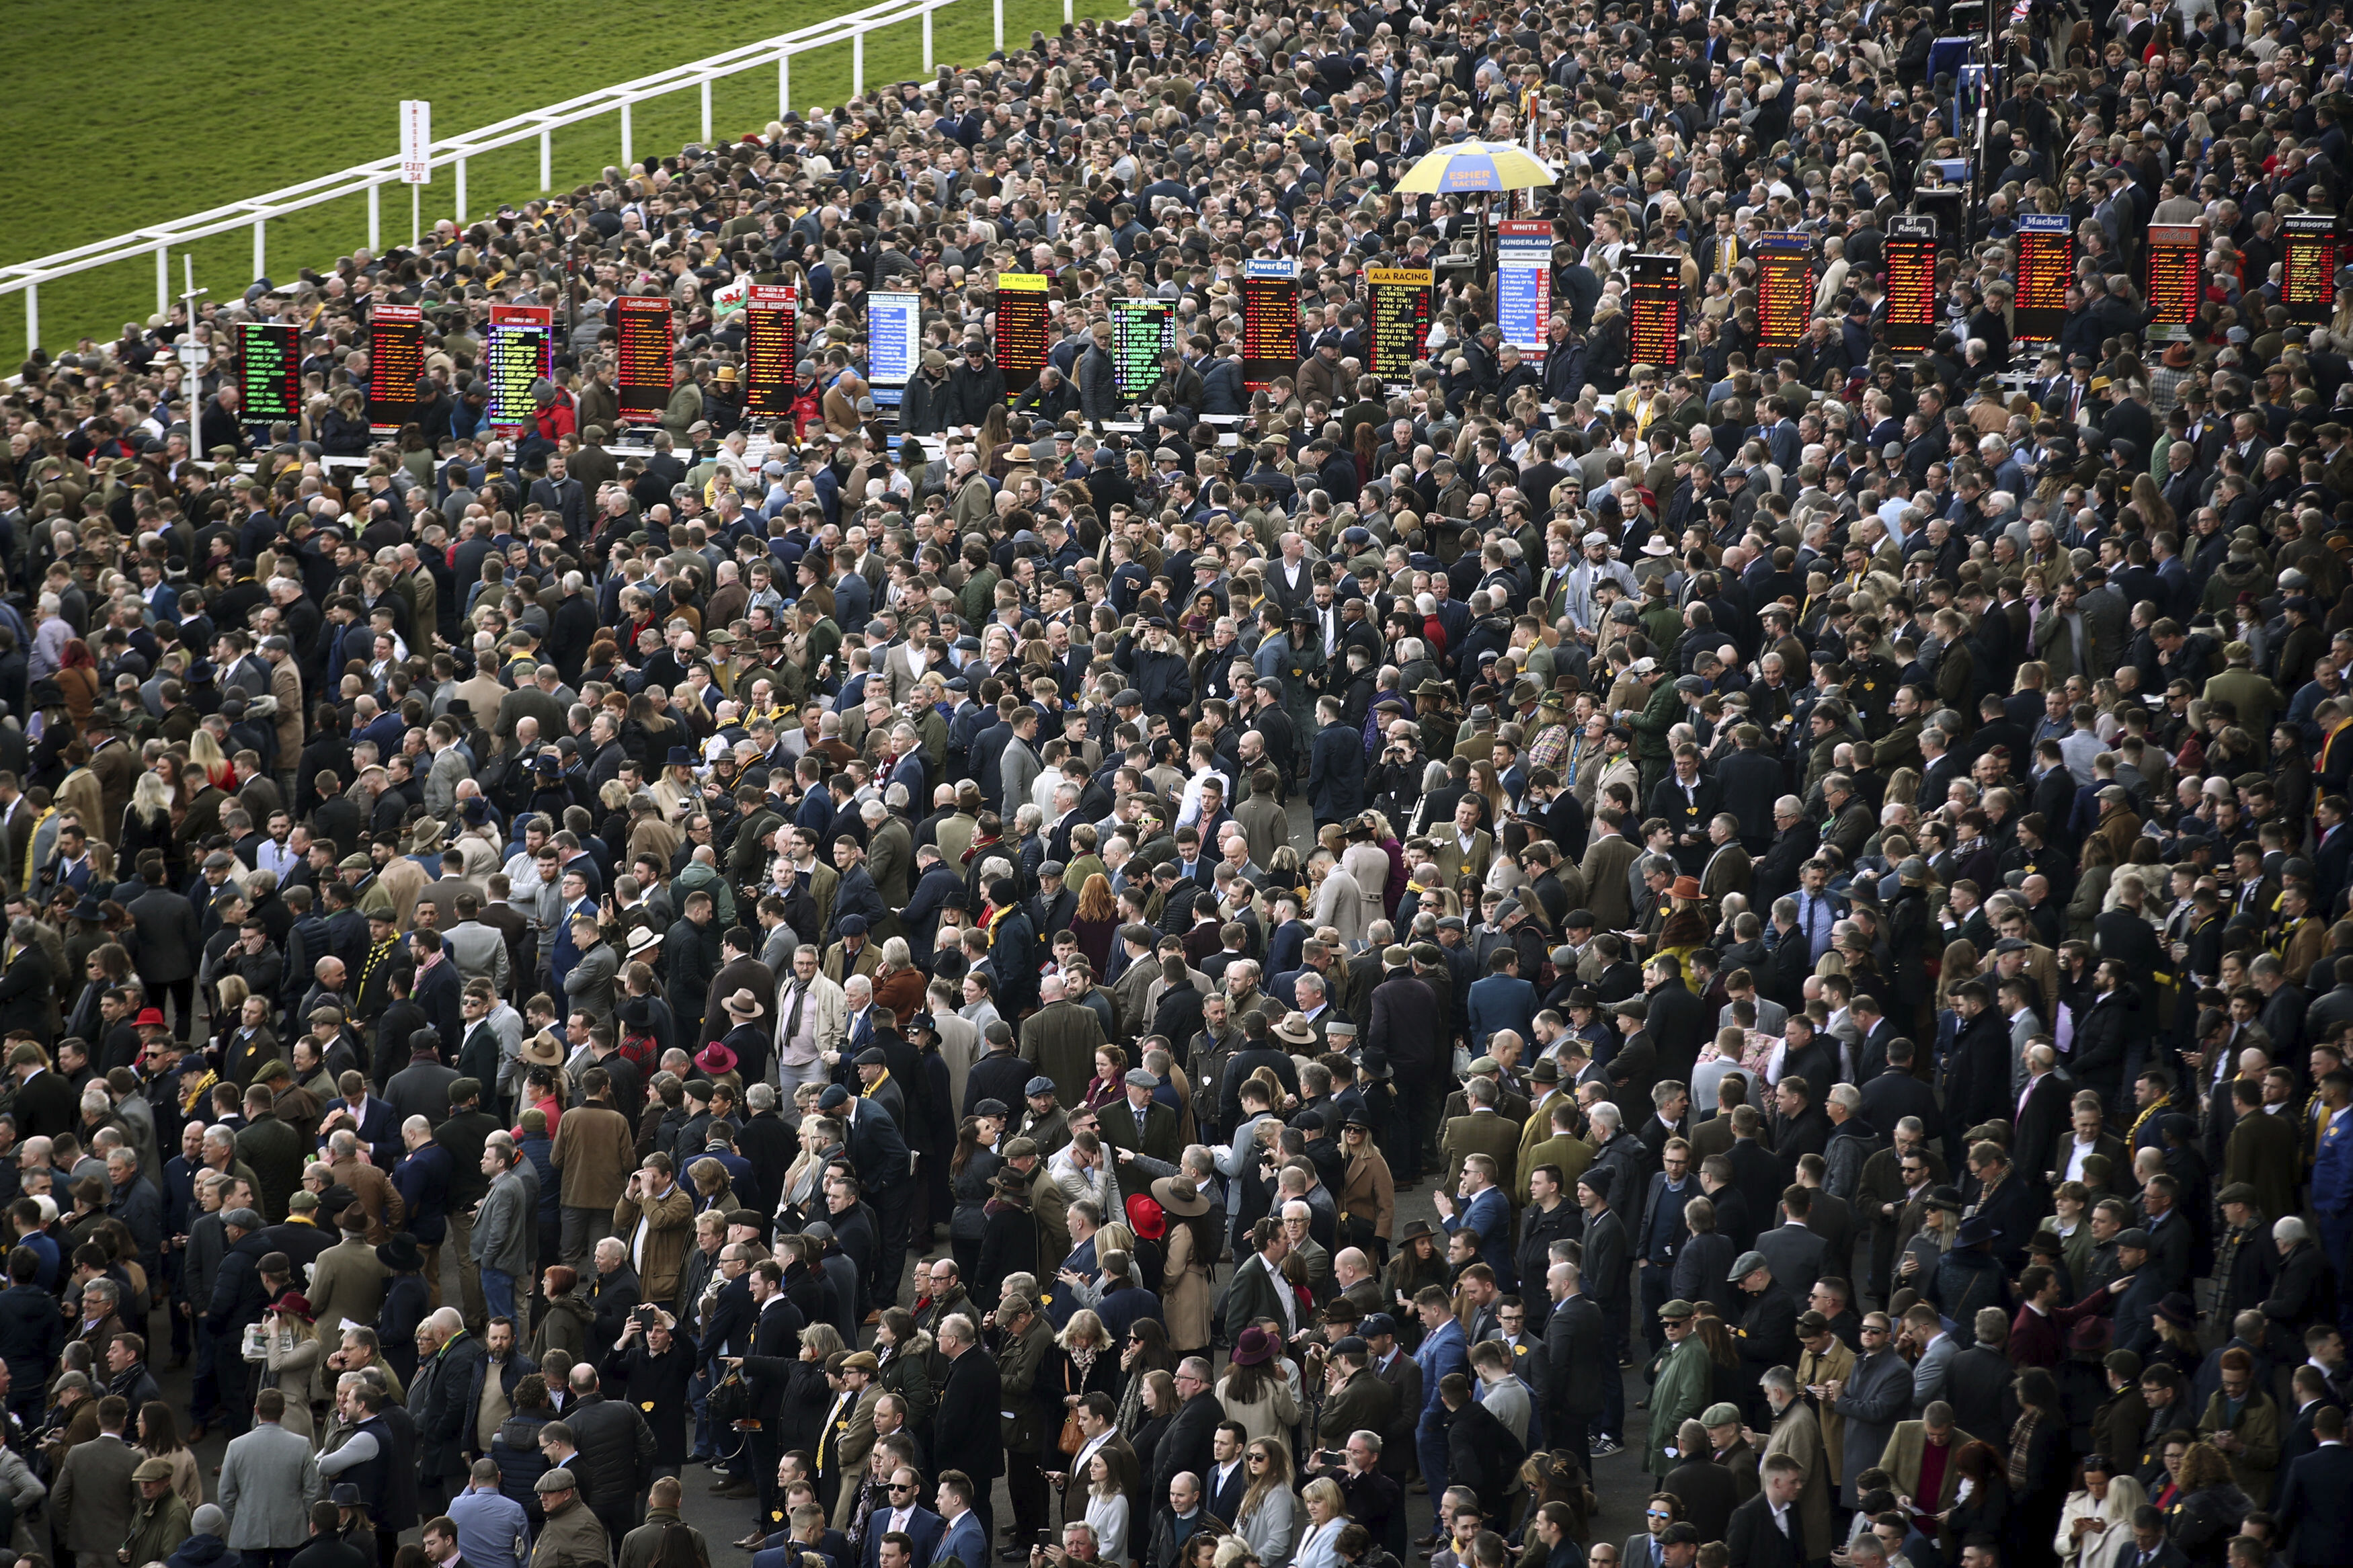 Crowds during day four of the Cheltenham Festival at Cheltenham Racecourse in Cheltenham, England, Friday, March 13, 2020. (Tim Goode/PA via AP)